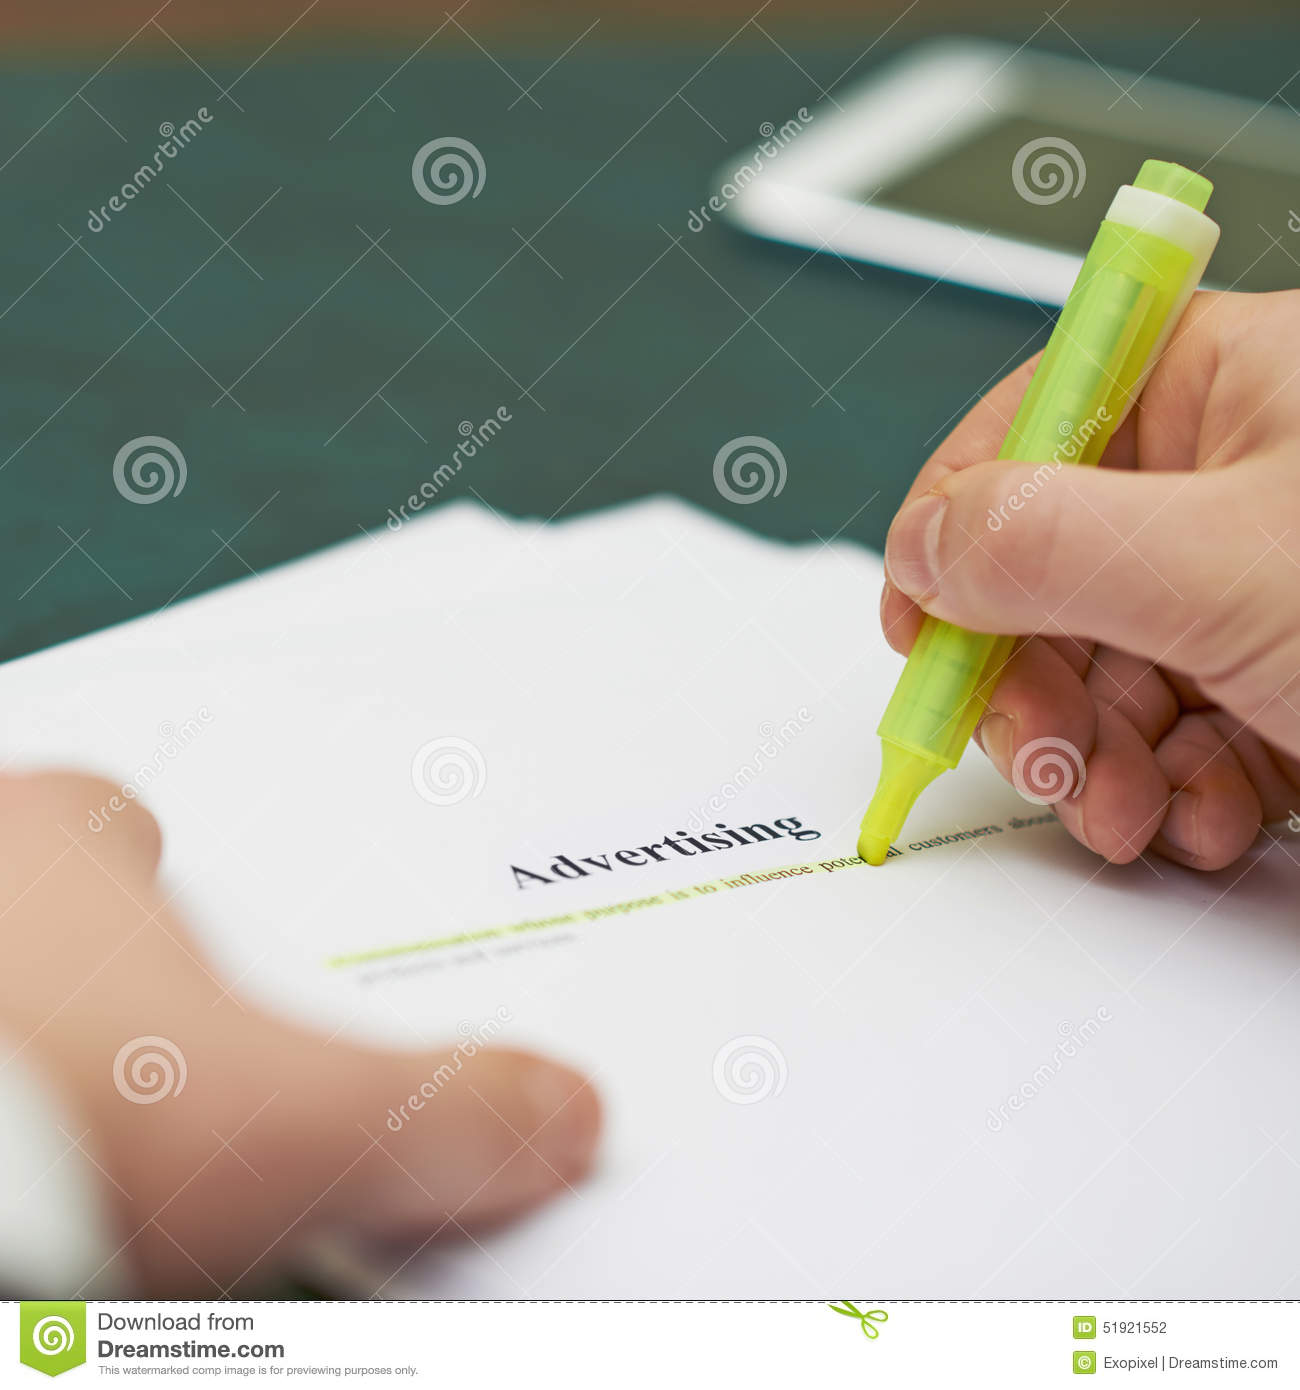 Marking Words In An Advertising Definition Stock Photo - Image of